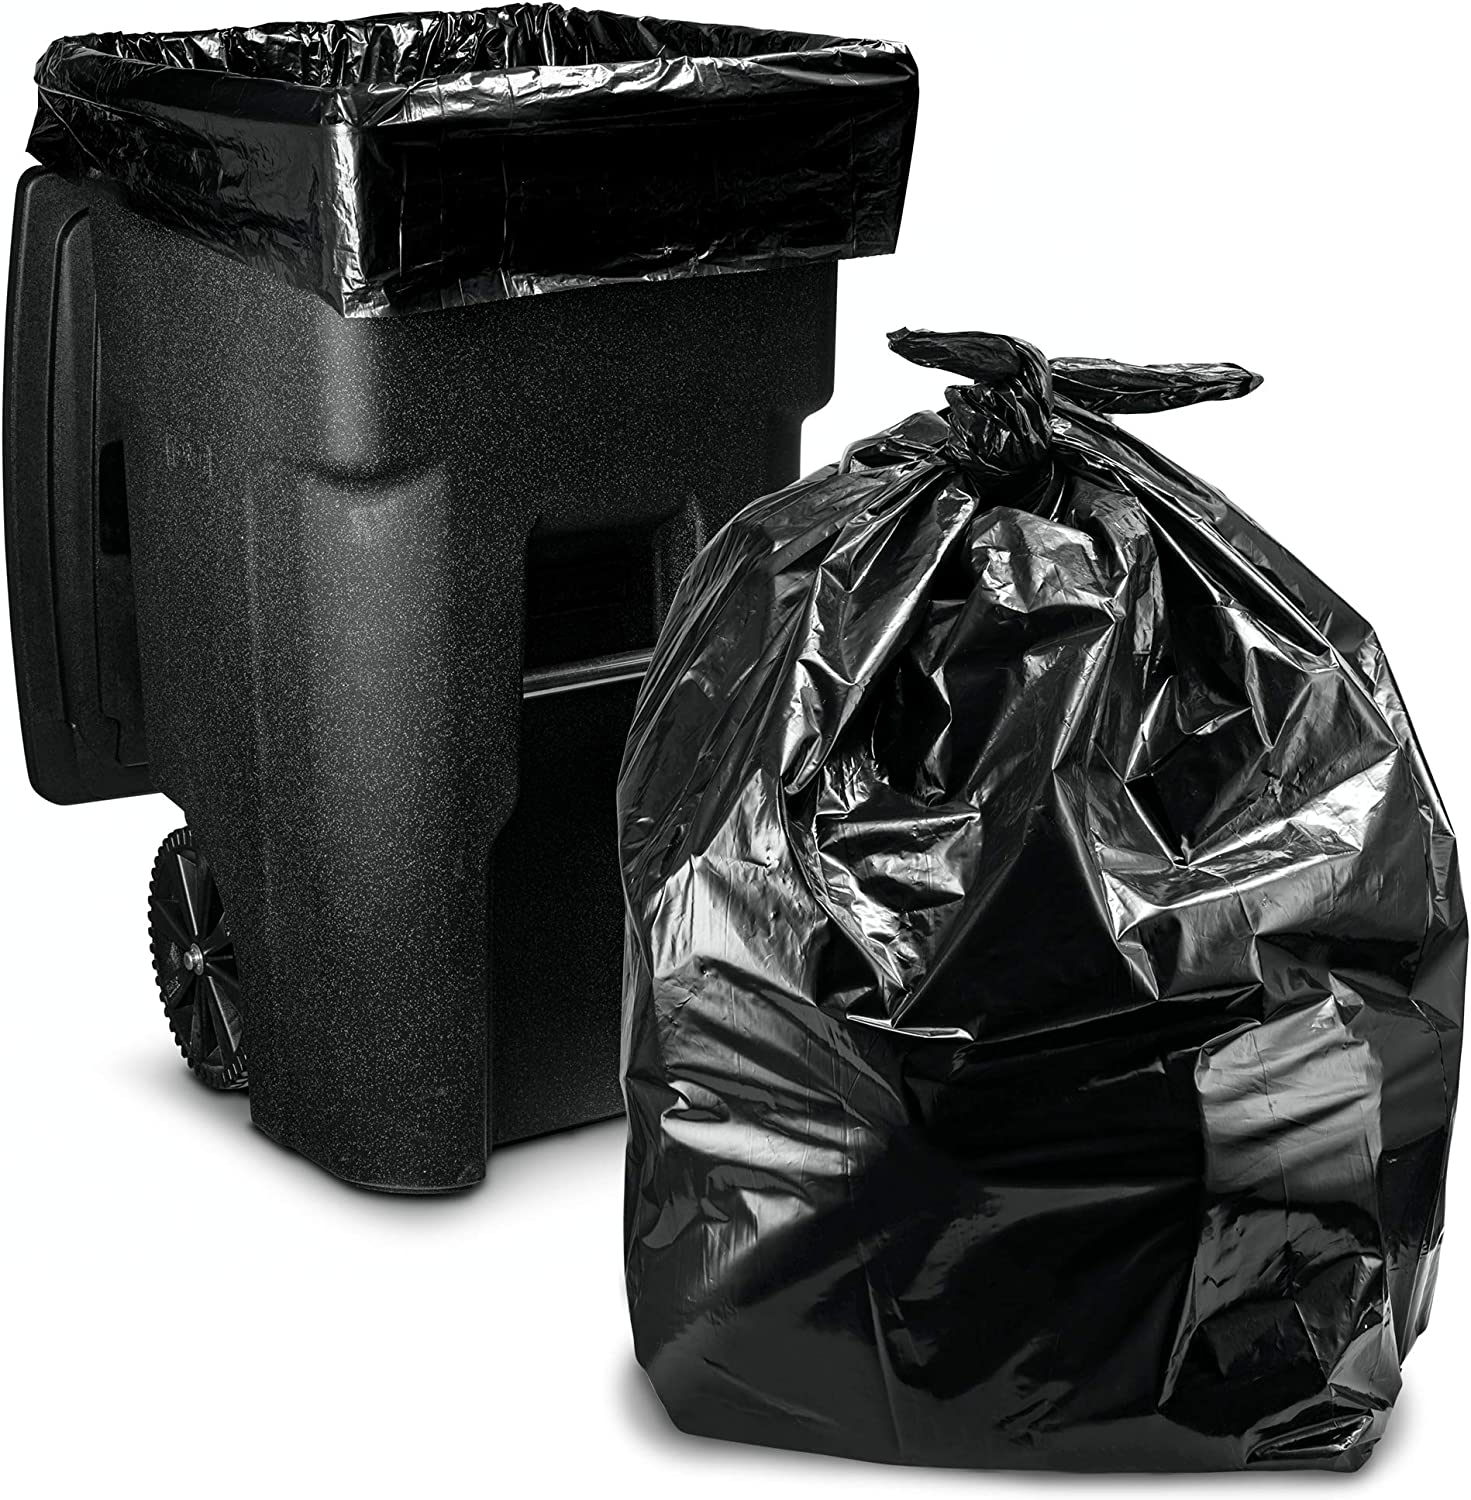 64-65 Gallon Trash Bags for Toter, (50 Count w/Ties) Large Garbage Bags, 50